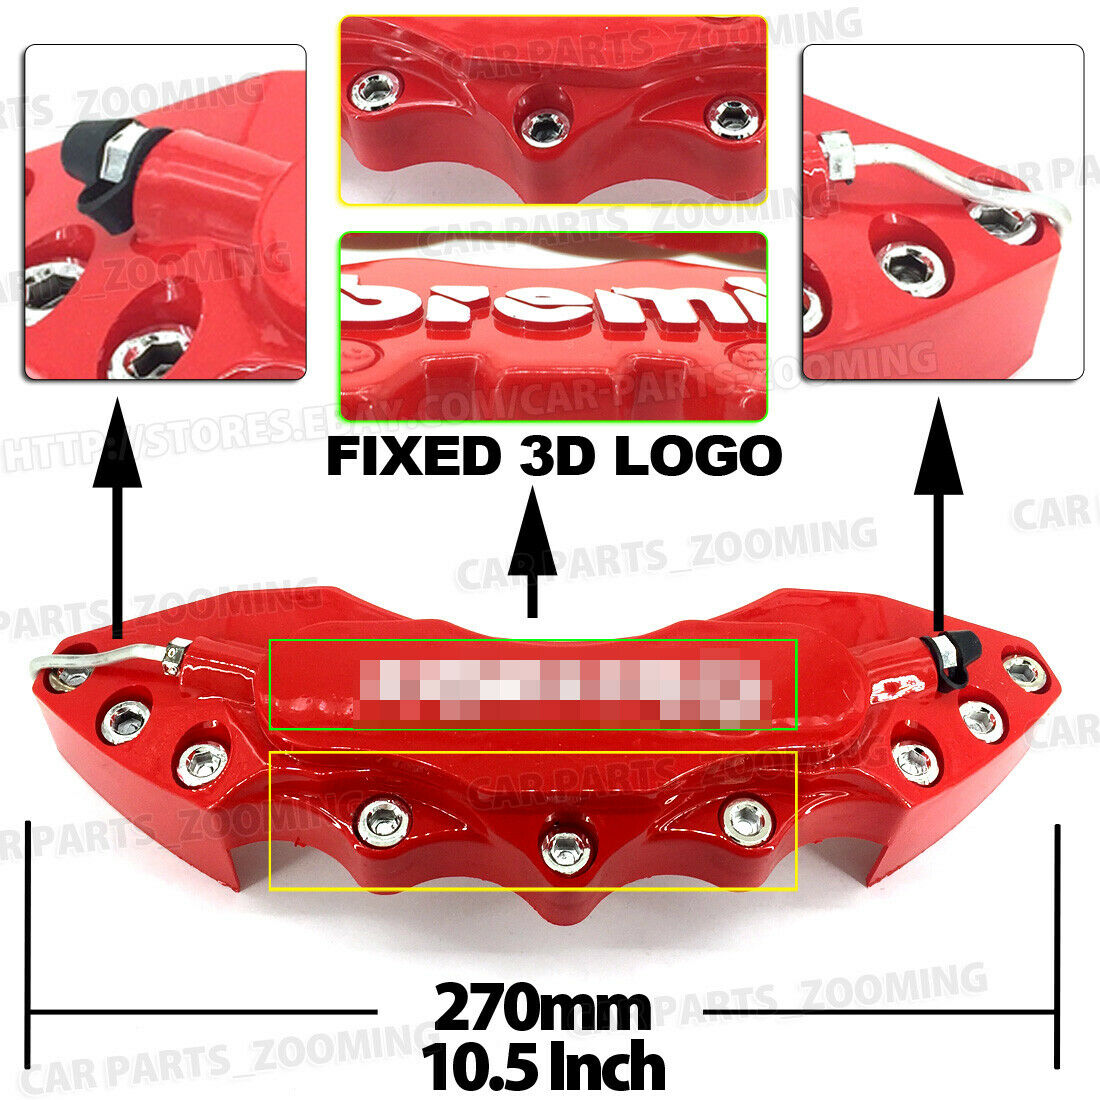 Color : Red NO LOGO SFFSMD 4Pcs 3D Disc Brake Caliper Cover Universal Style Disc Front and Rear Kit Fit 17 Inches 2 Pieces Medium and 2 Pieces Small